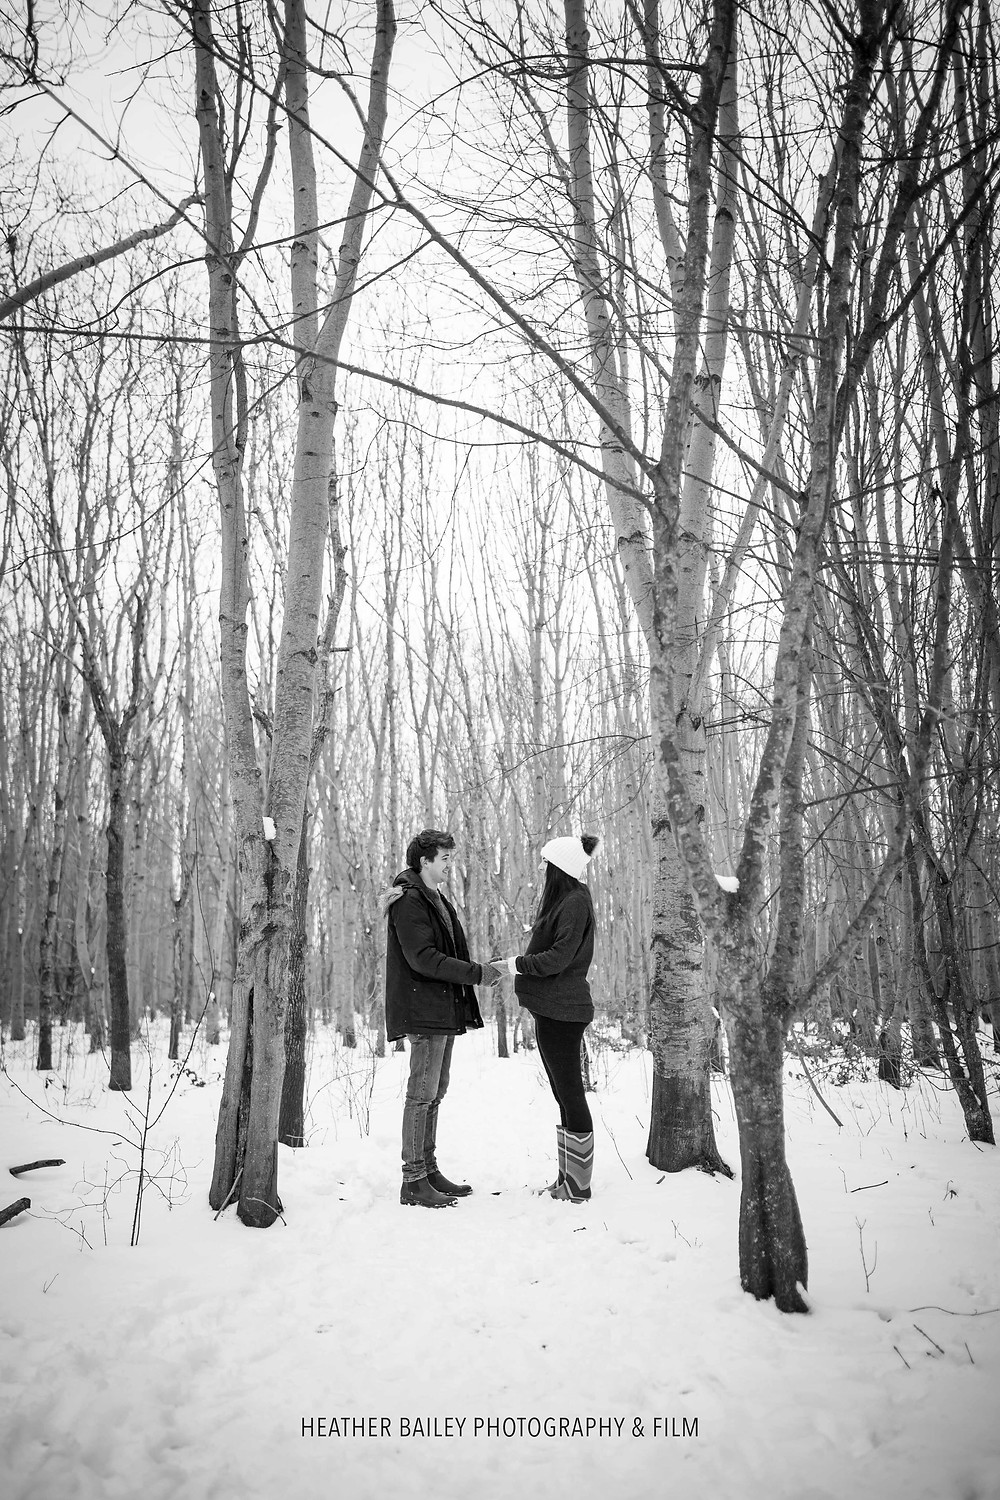 Winter Maternity Shoot in the Snow. Maternity Photo Shoot Ideas - Photography by Heather Bailey